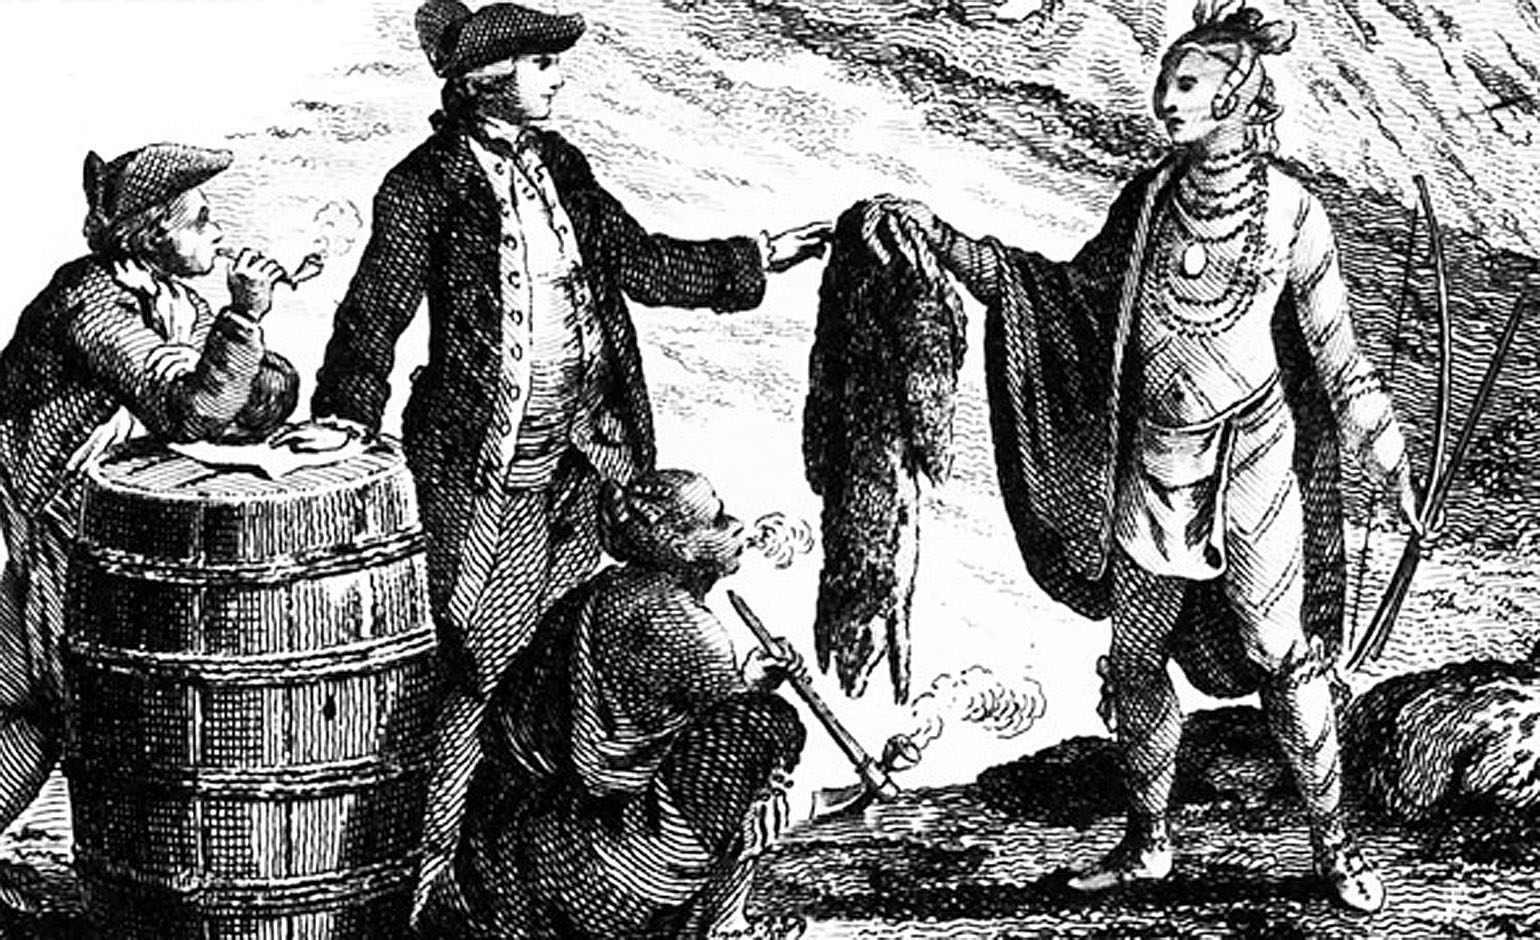 French traders exchanging European goods for furs trapped by Native Americans. Decorative detail from a 1777 map of Canada by William Faden. Courtesy of the Library of Congress, Geography and Map Division.